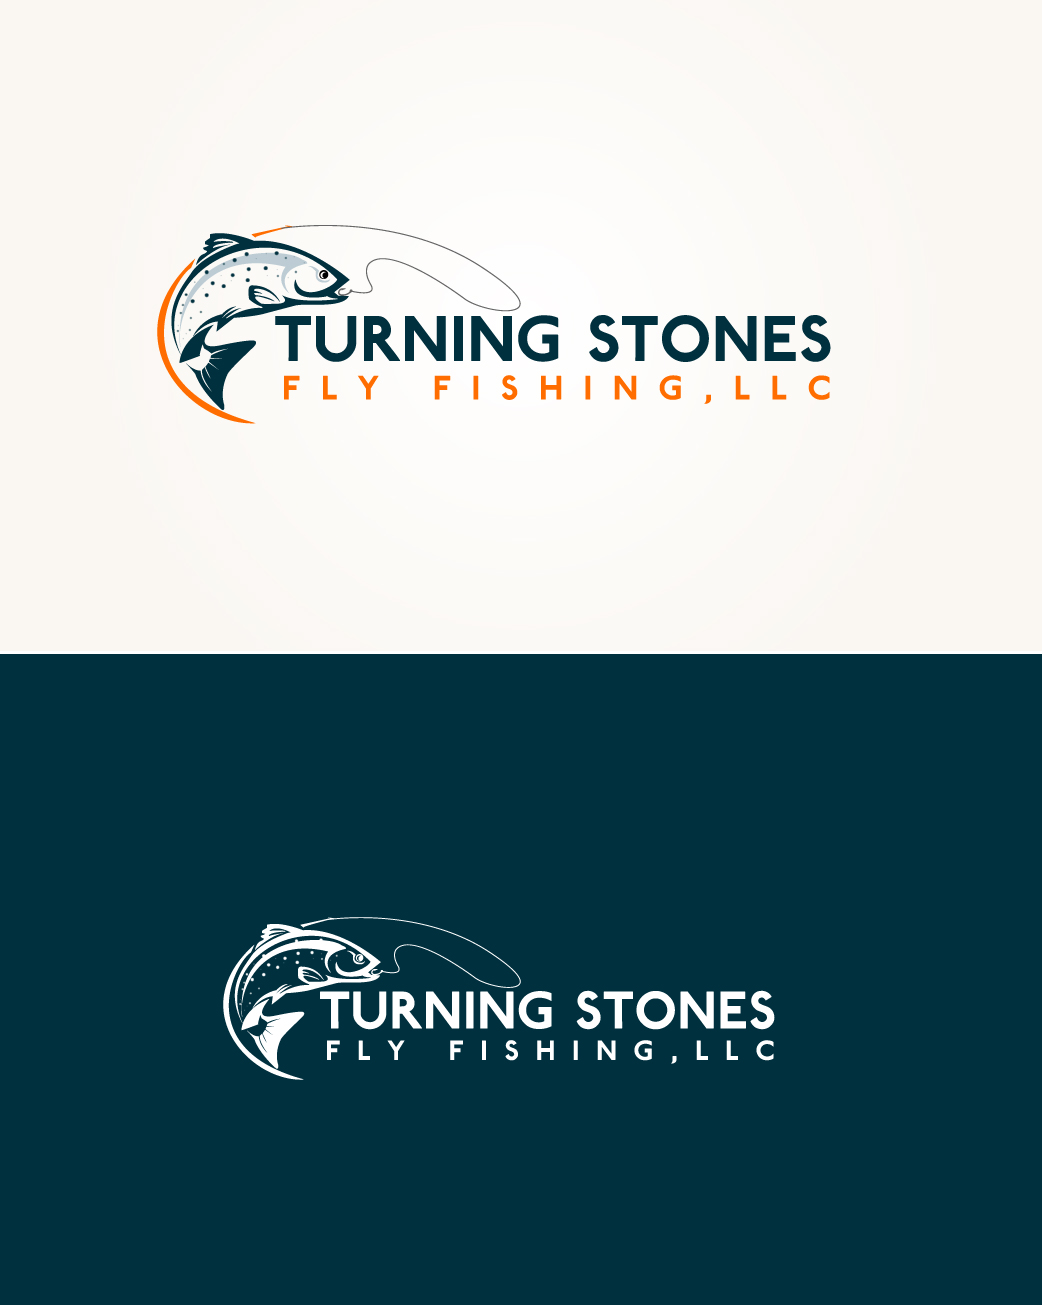 Logo Design by Tarek Khenfir - Entry No. 4 in the Logo Design Contest New Logo Design for Turning Stones Fly Fishing.